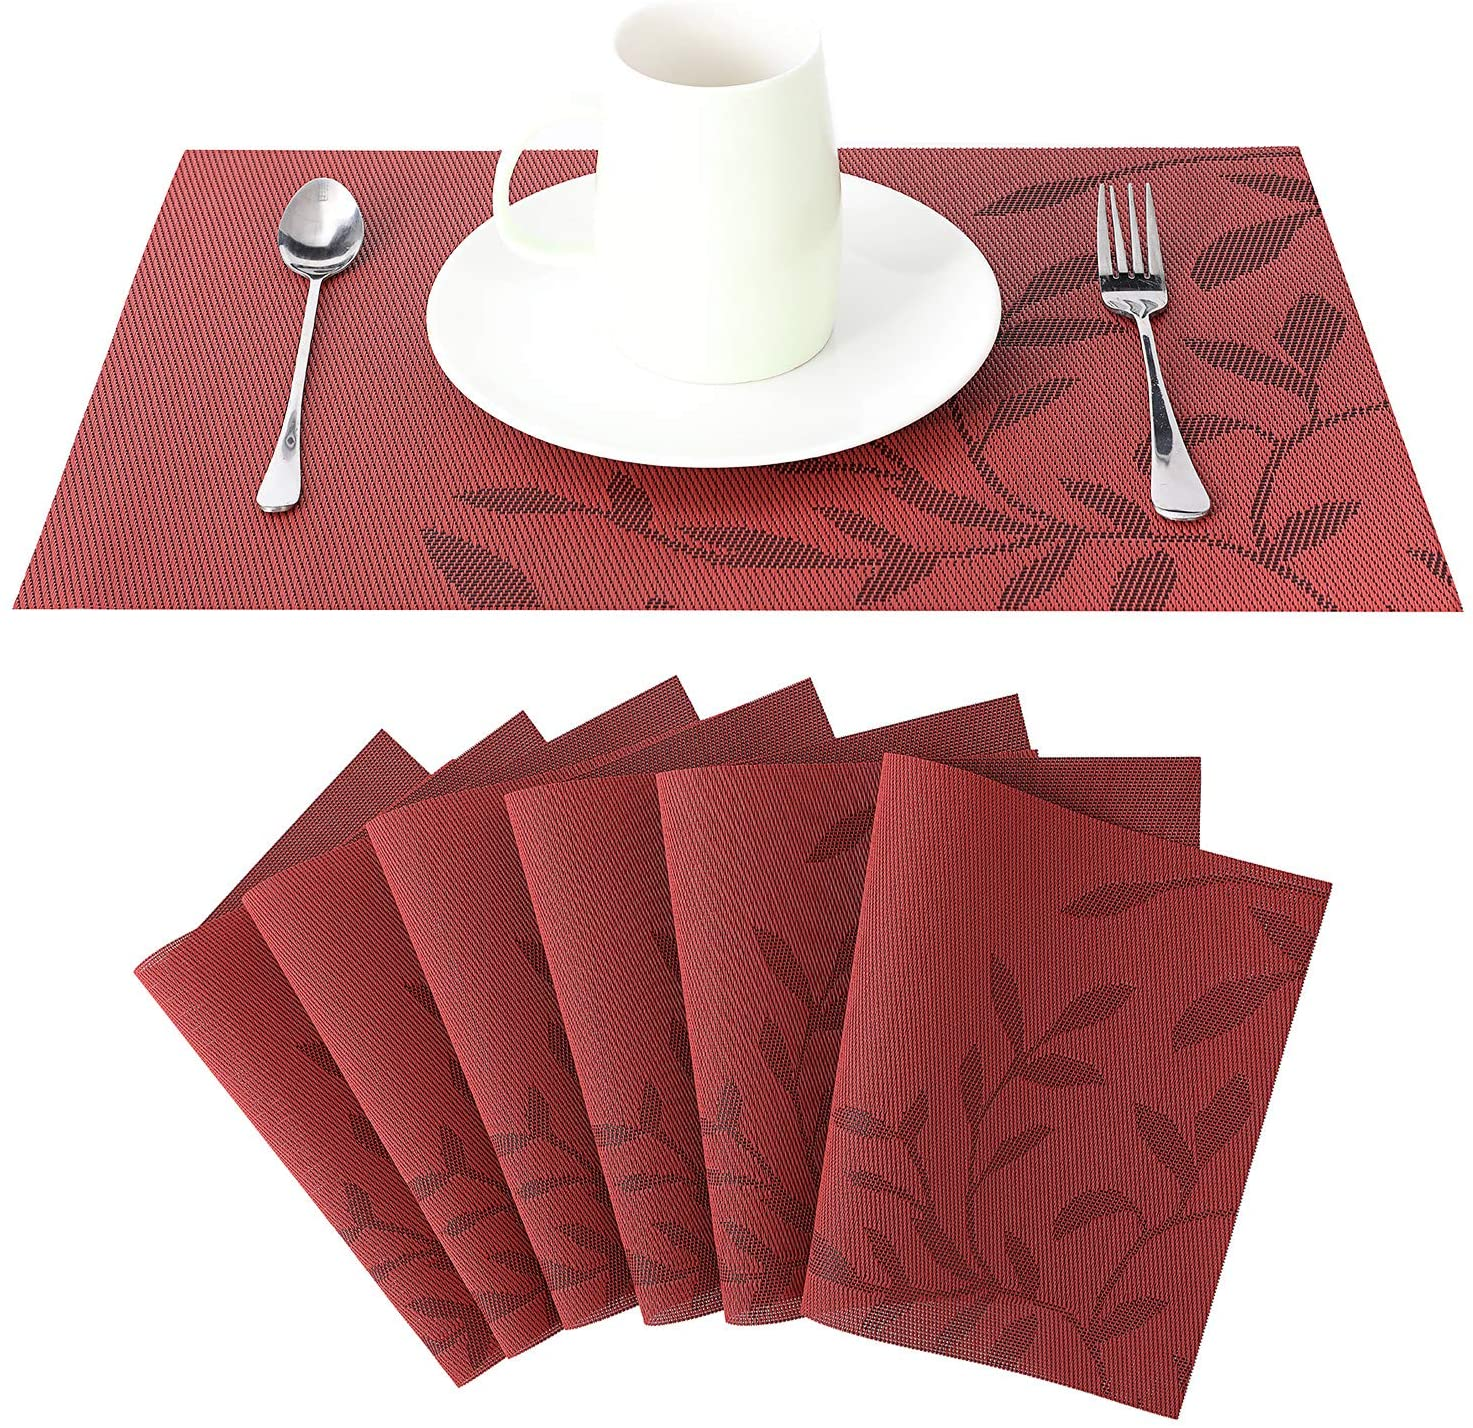 placemats for Dining Table bghnifs, Washable Table Mats Set of 6 Non-Slip Heat Resistant Kitchen Table Mats Easy to Clean (T-red)